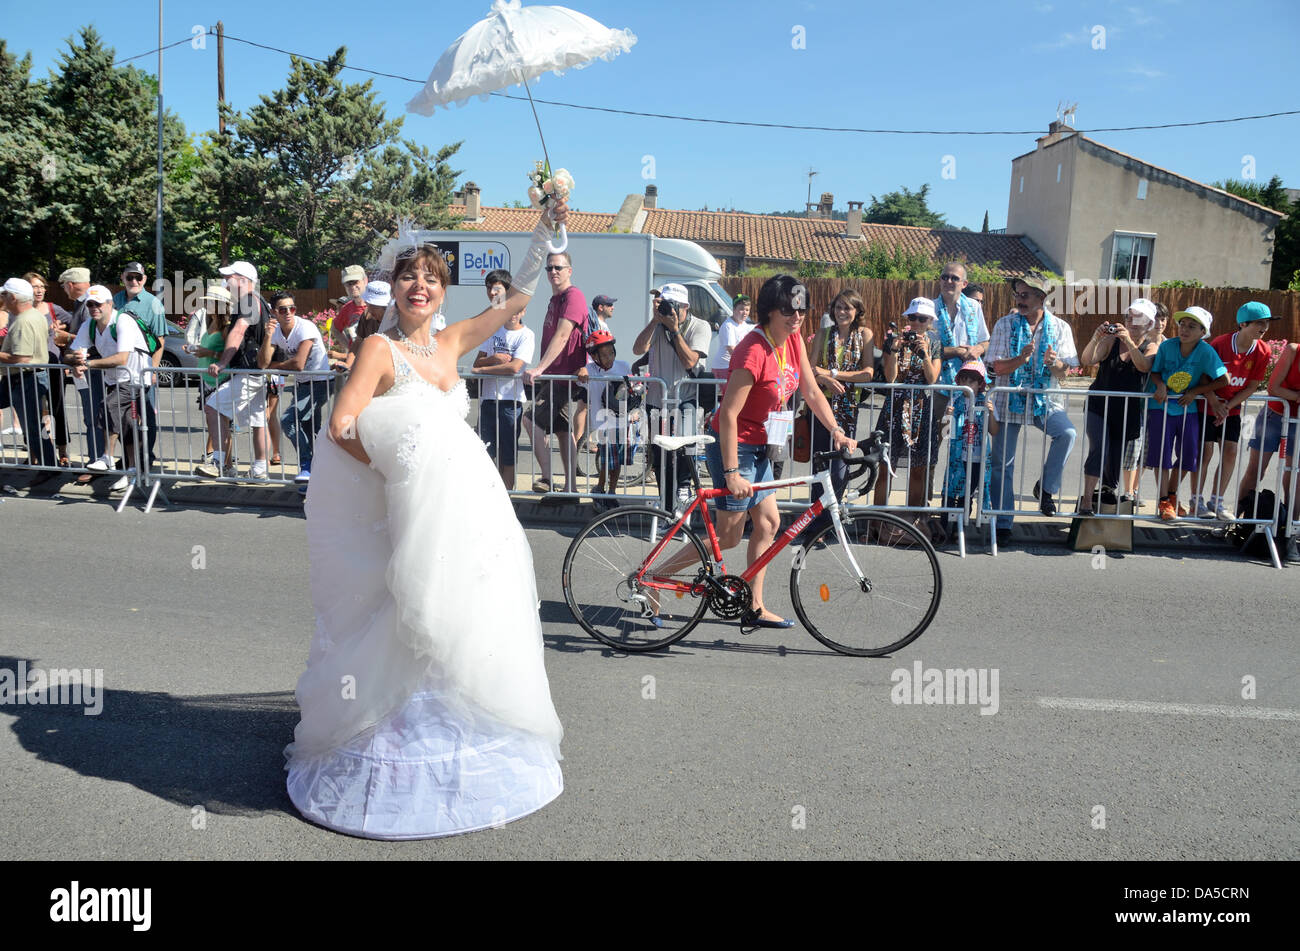 Provence, France. 04th July, 2013. Bride in Fancy Dress Parade Before the Start of the Tour de France Bike Race - Stock Image